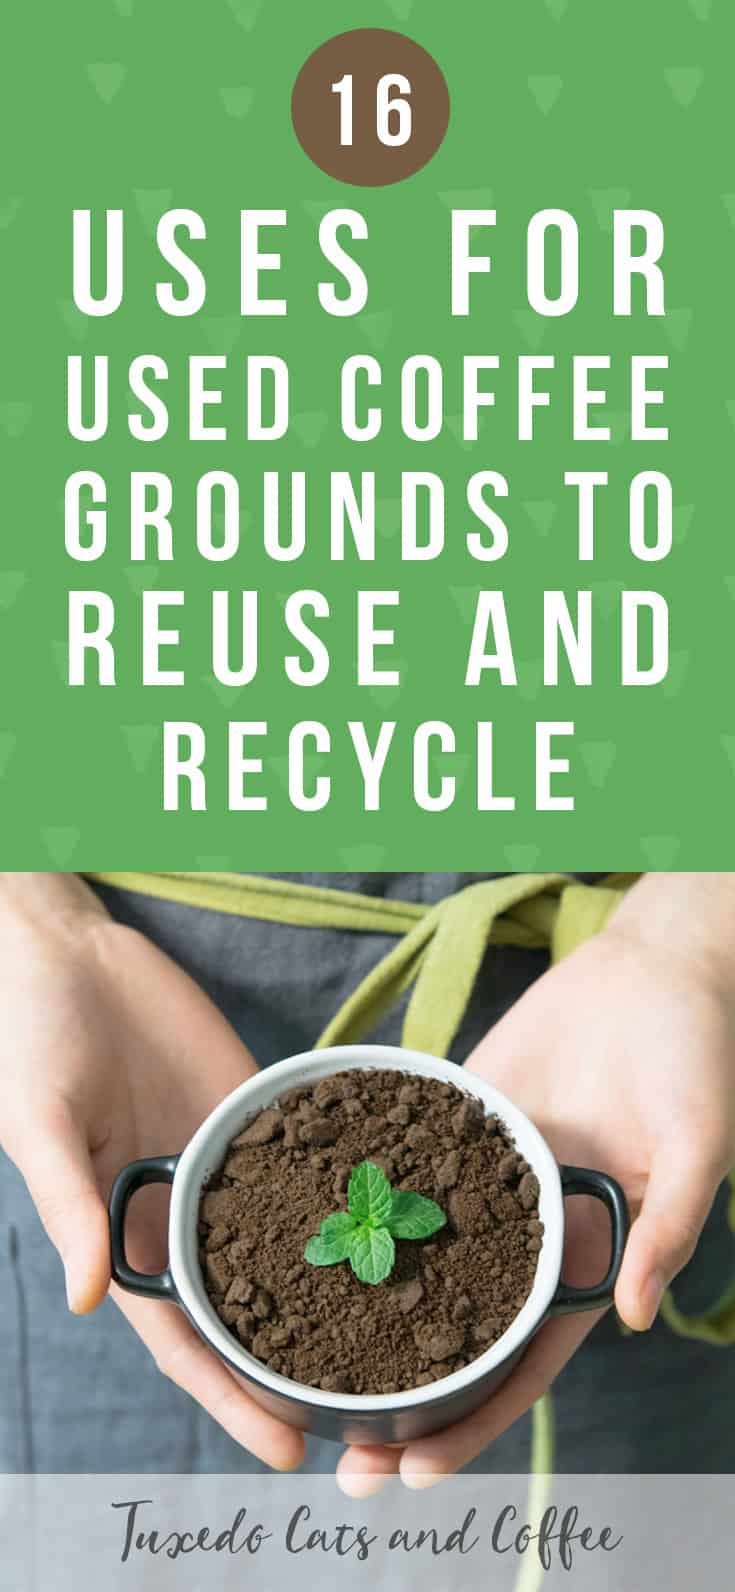 Wondering if there's a way to upcycle your used coffee grounds instead of just throwing them in the trash? Here are 16 uses for used coffee grounds to reuse and recycle!